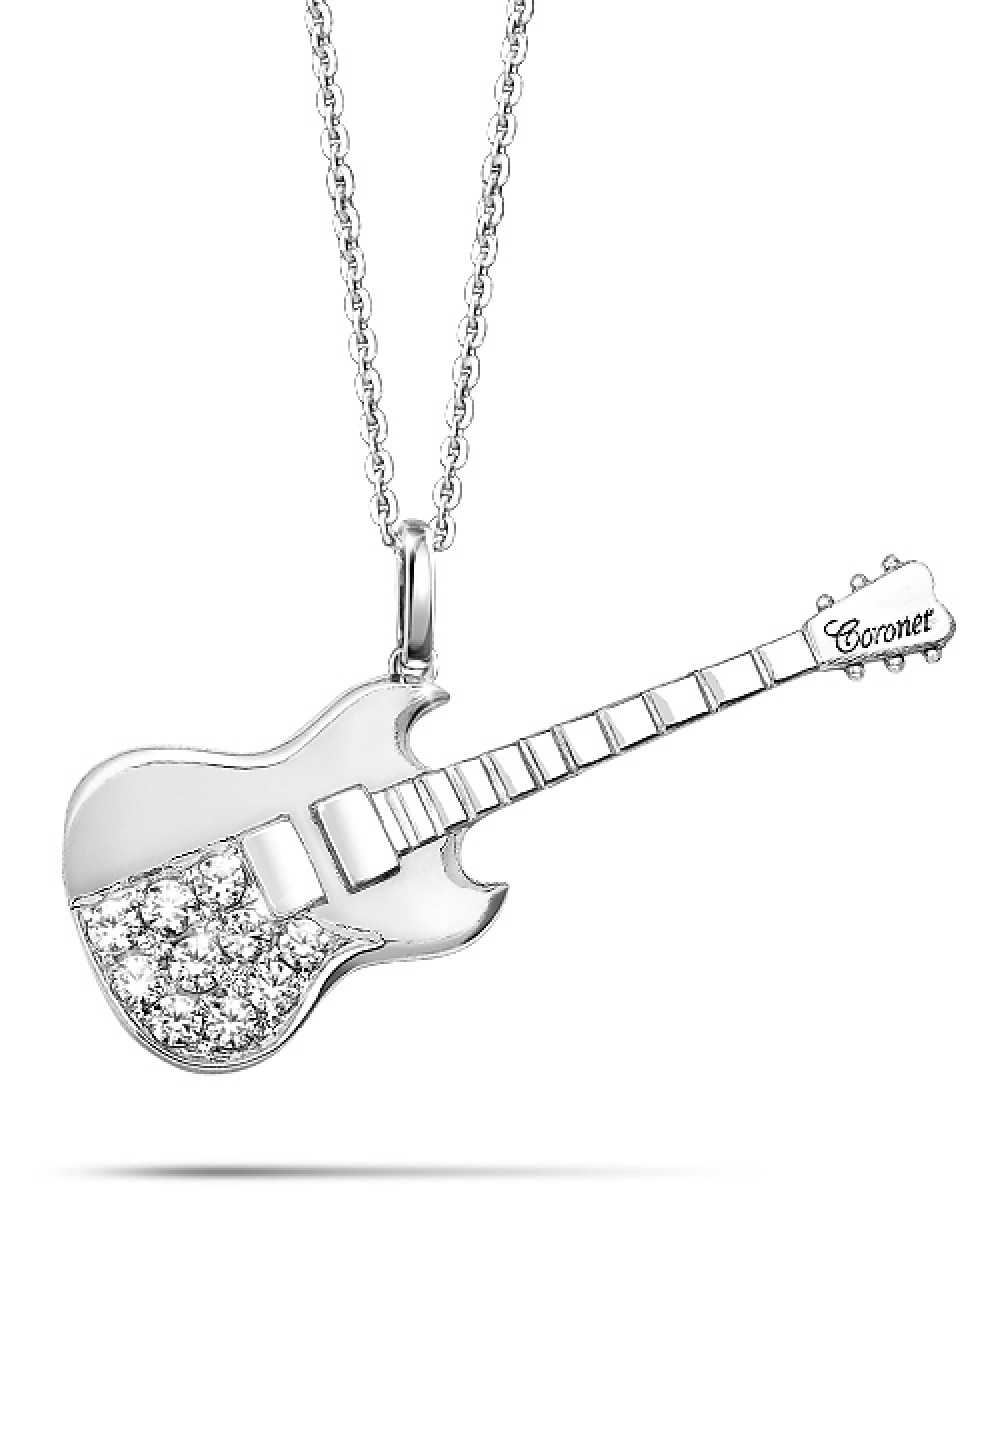 music products pendant fashion s centimom men chain ball selling hot steel stainless guitar best necklace mens fire